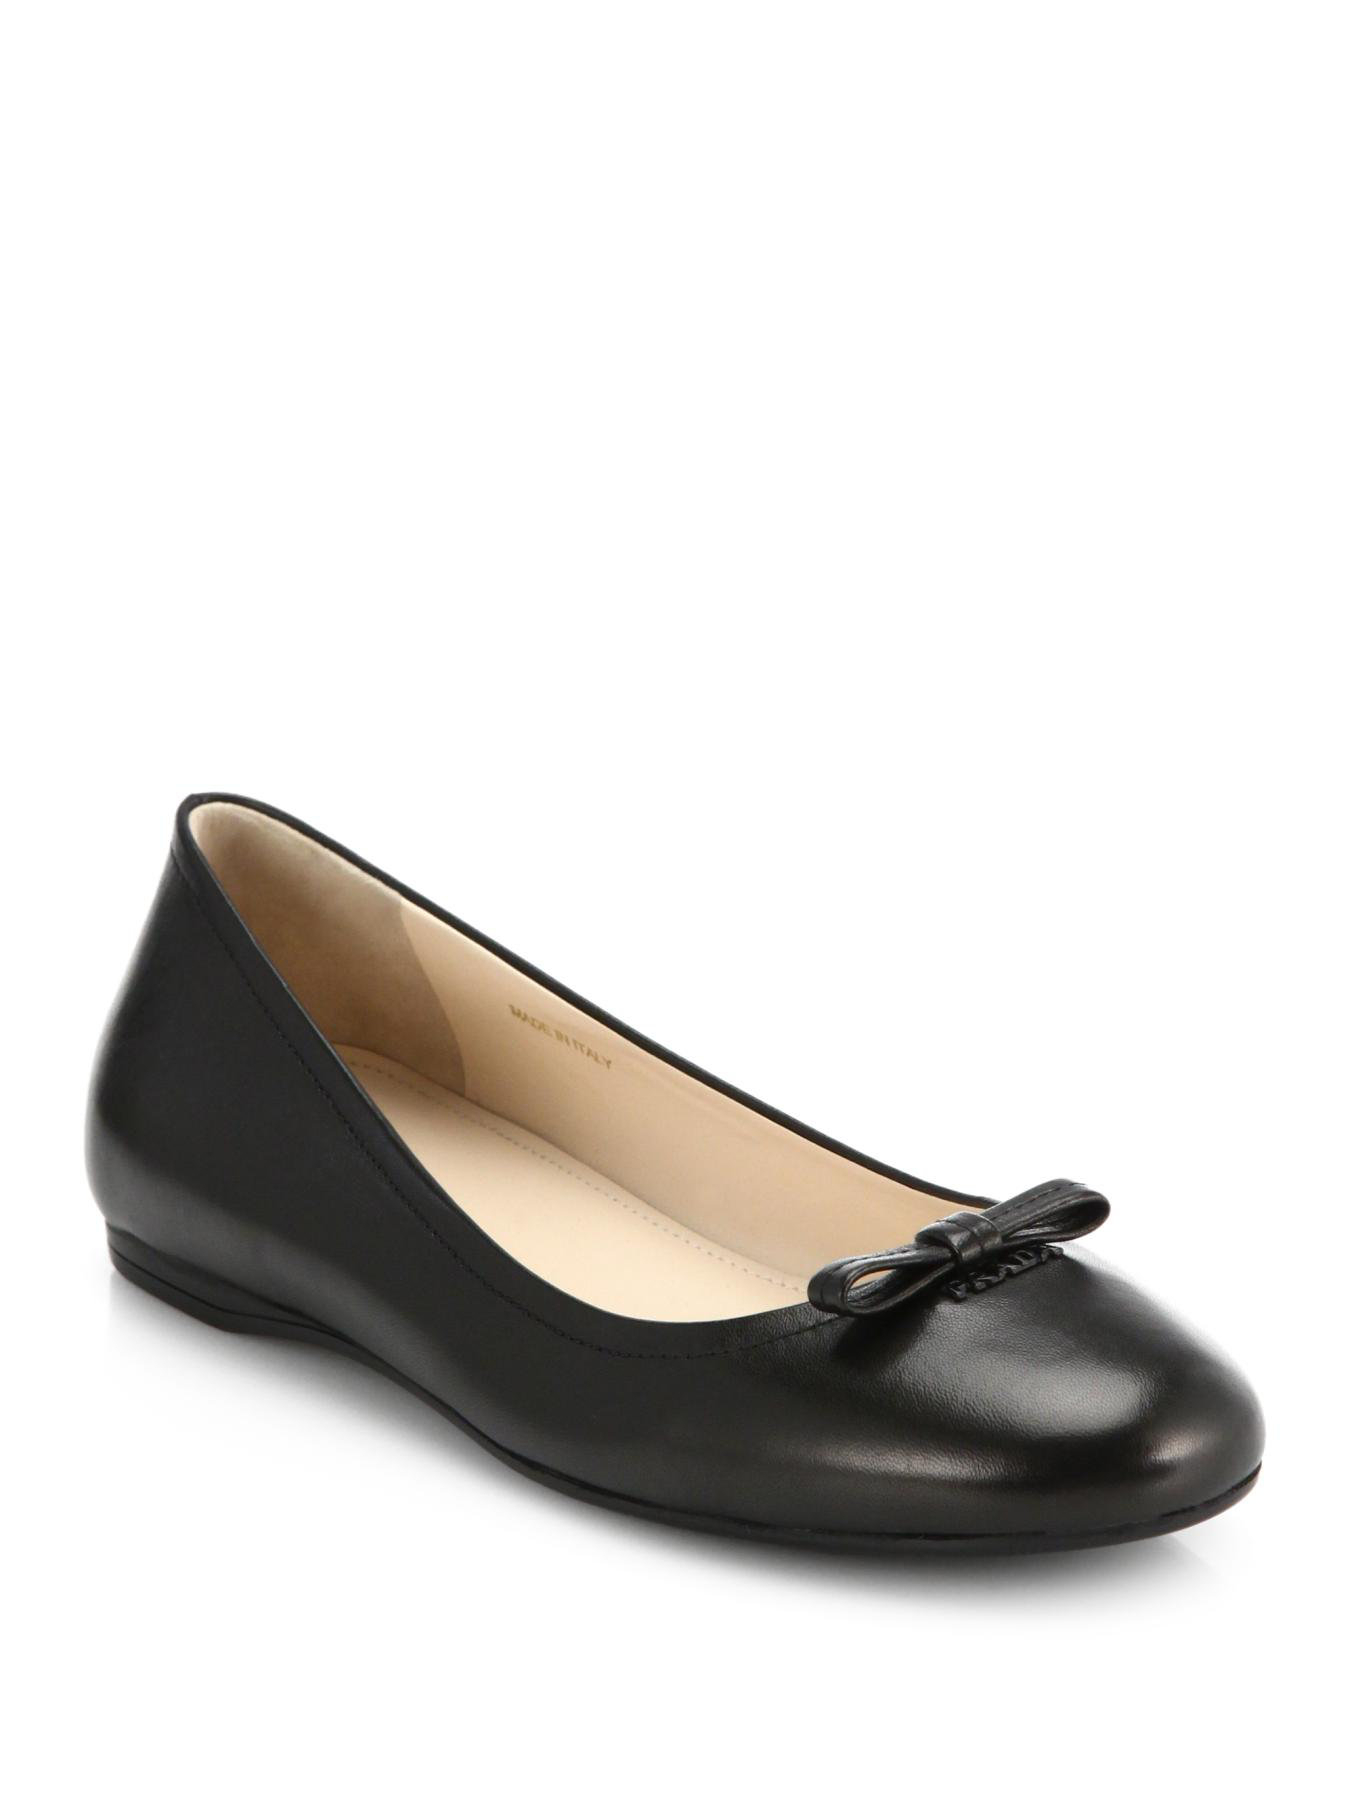 Shop an impressive collection of trend-right flats and ballet flats for women at Nine West for virtually every occasion. Sizes 5 - Free Shipping available.